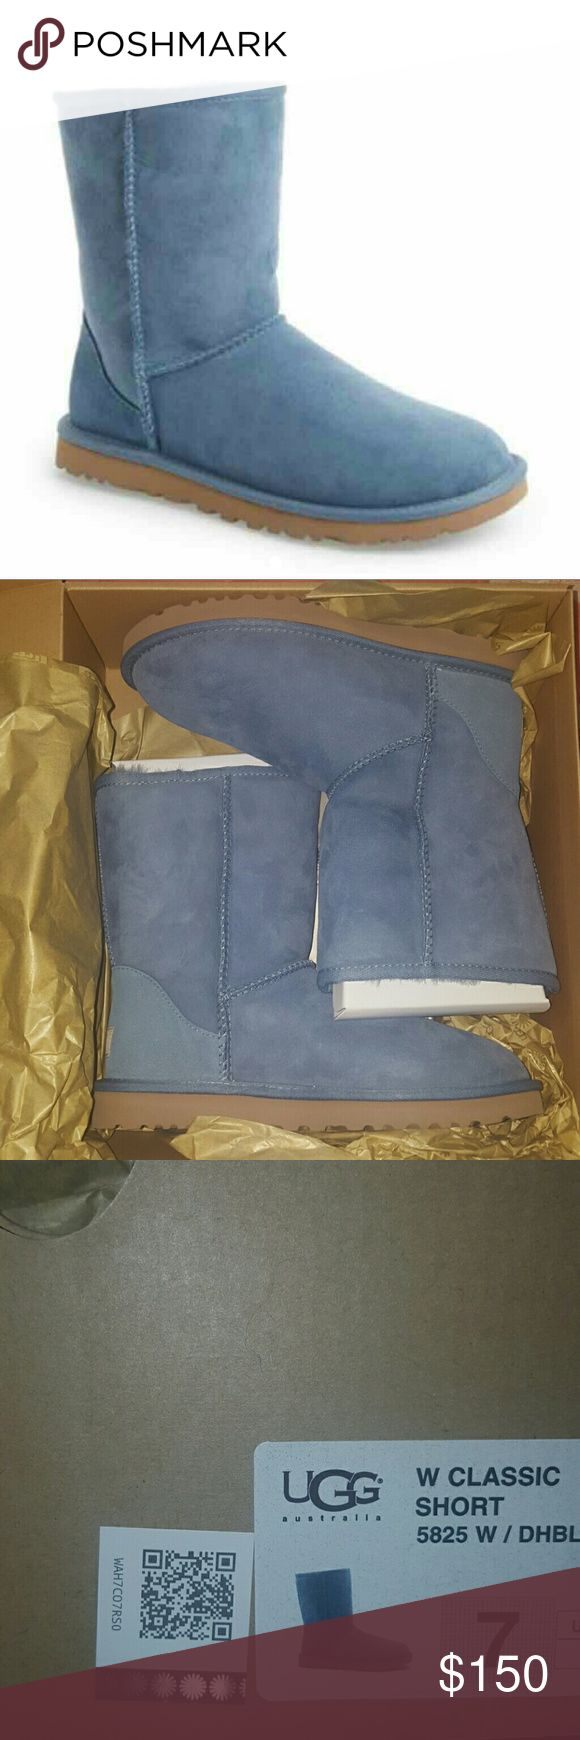 Ugg Australia 7 Dolphin Blue classic short boots New in box, authetic Ugg Australia short boots size 7. Purchased directly from Ugg store in NYC.  Beautiful blue Uggs that will go with just about anything!  Please make sure you know your size in these boots before purchasing. UGG Shoes Winter & Rain Boots